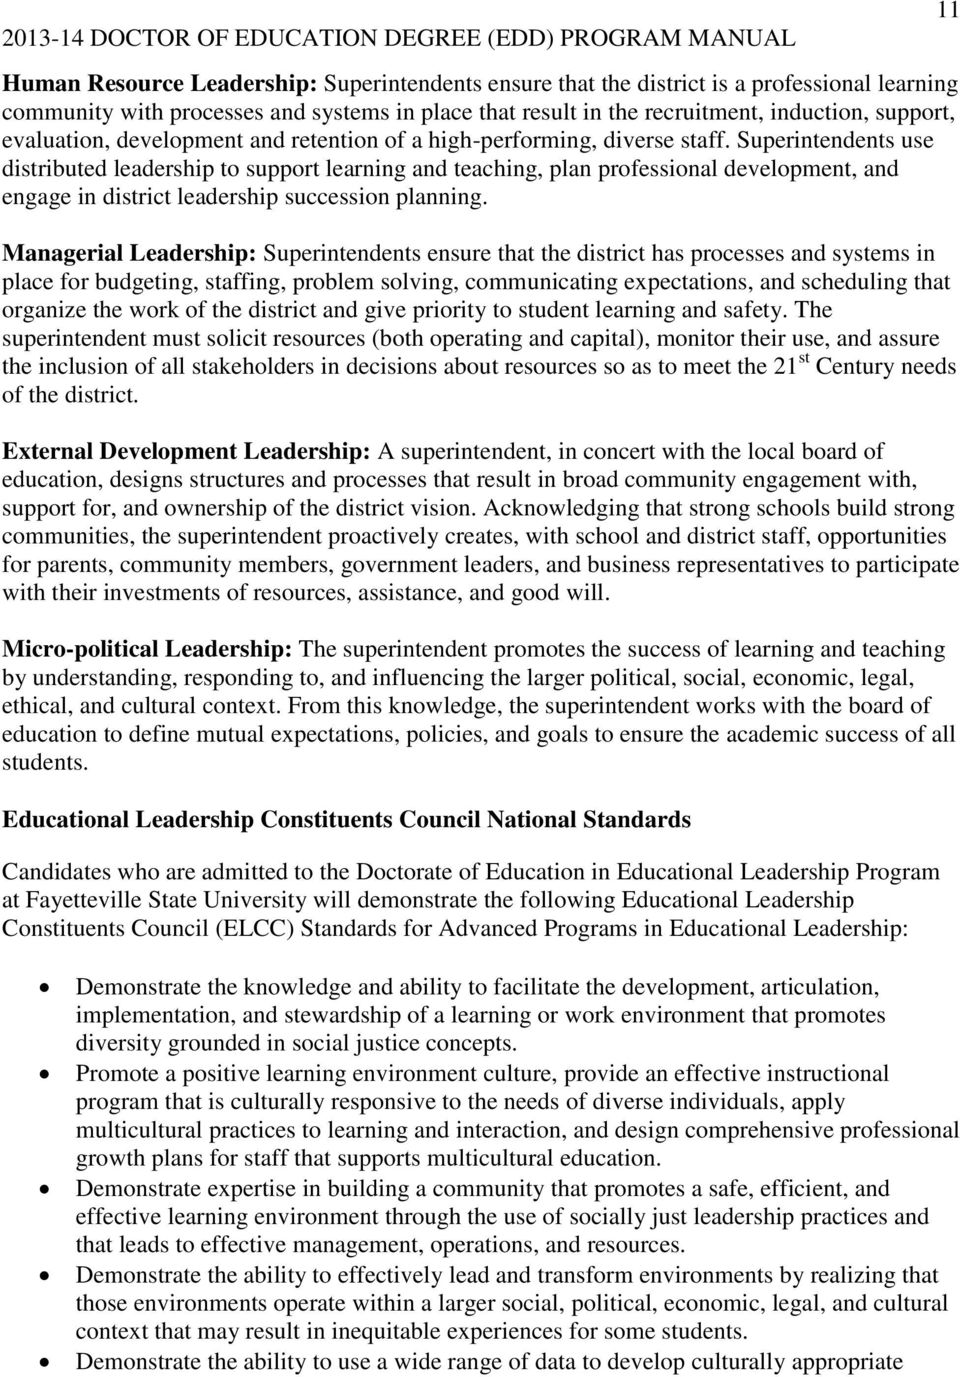 Superintendents use distributed leadership to support learning and teaching, plan professional development, and engage in district leadership succession planning.